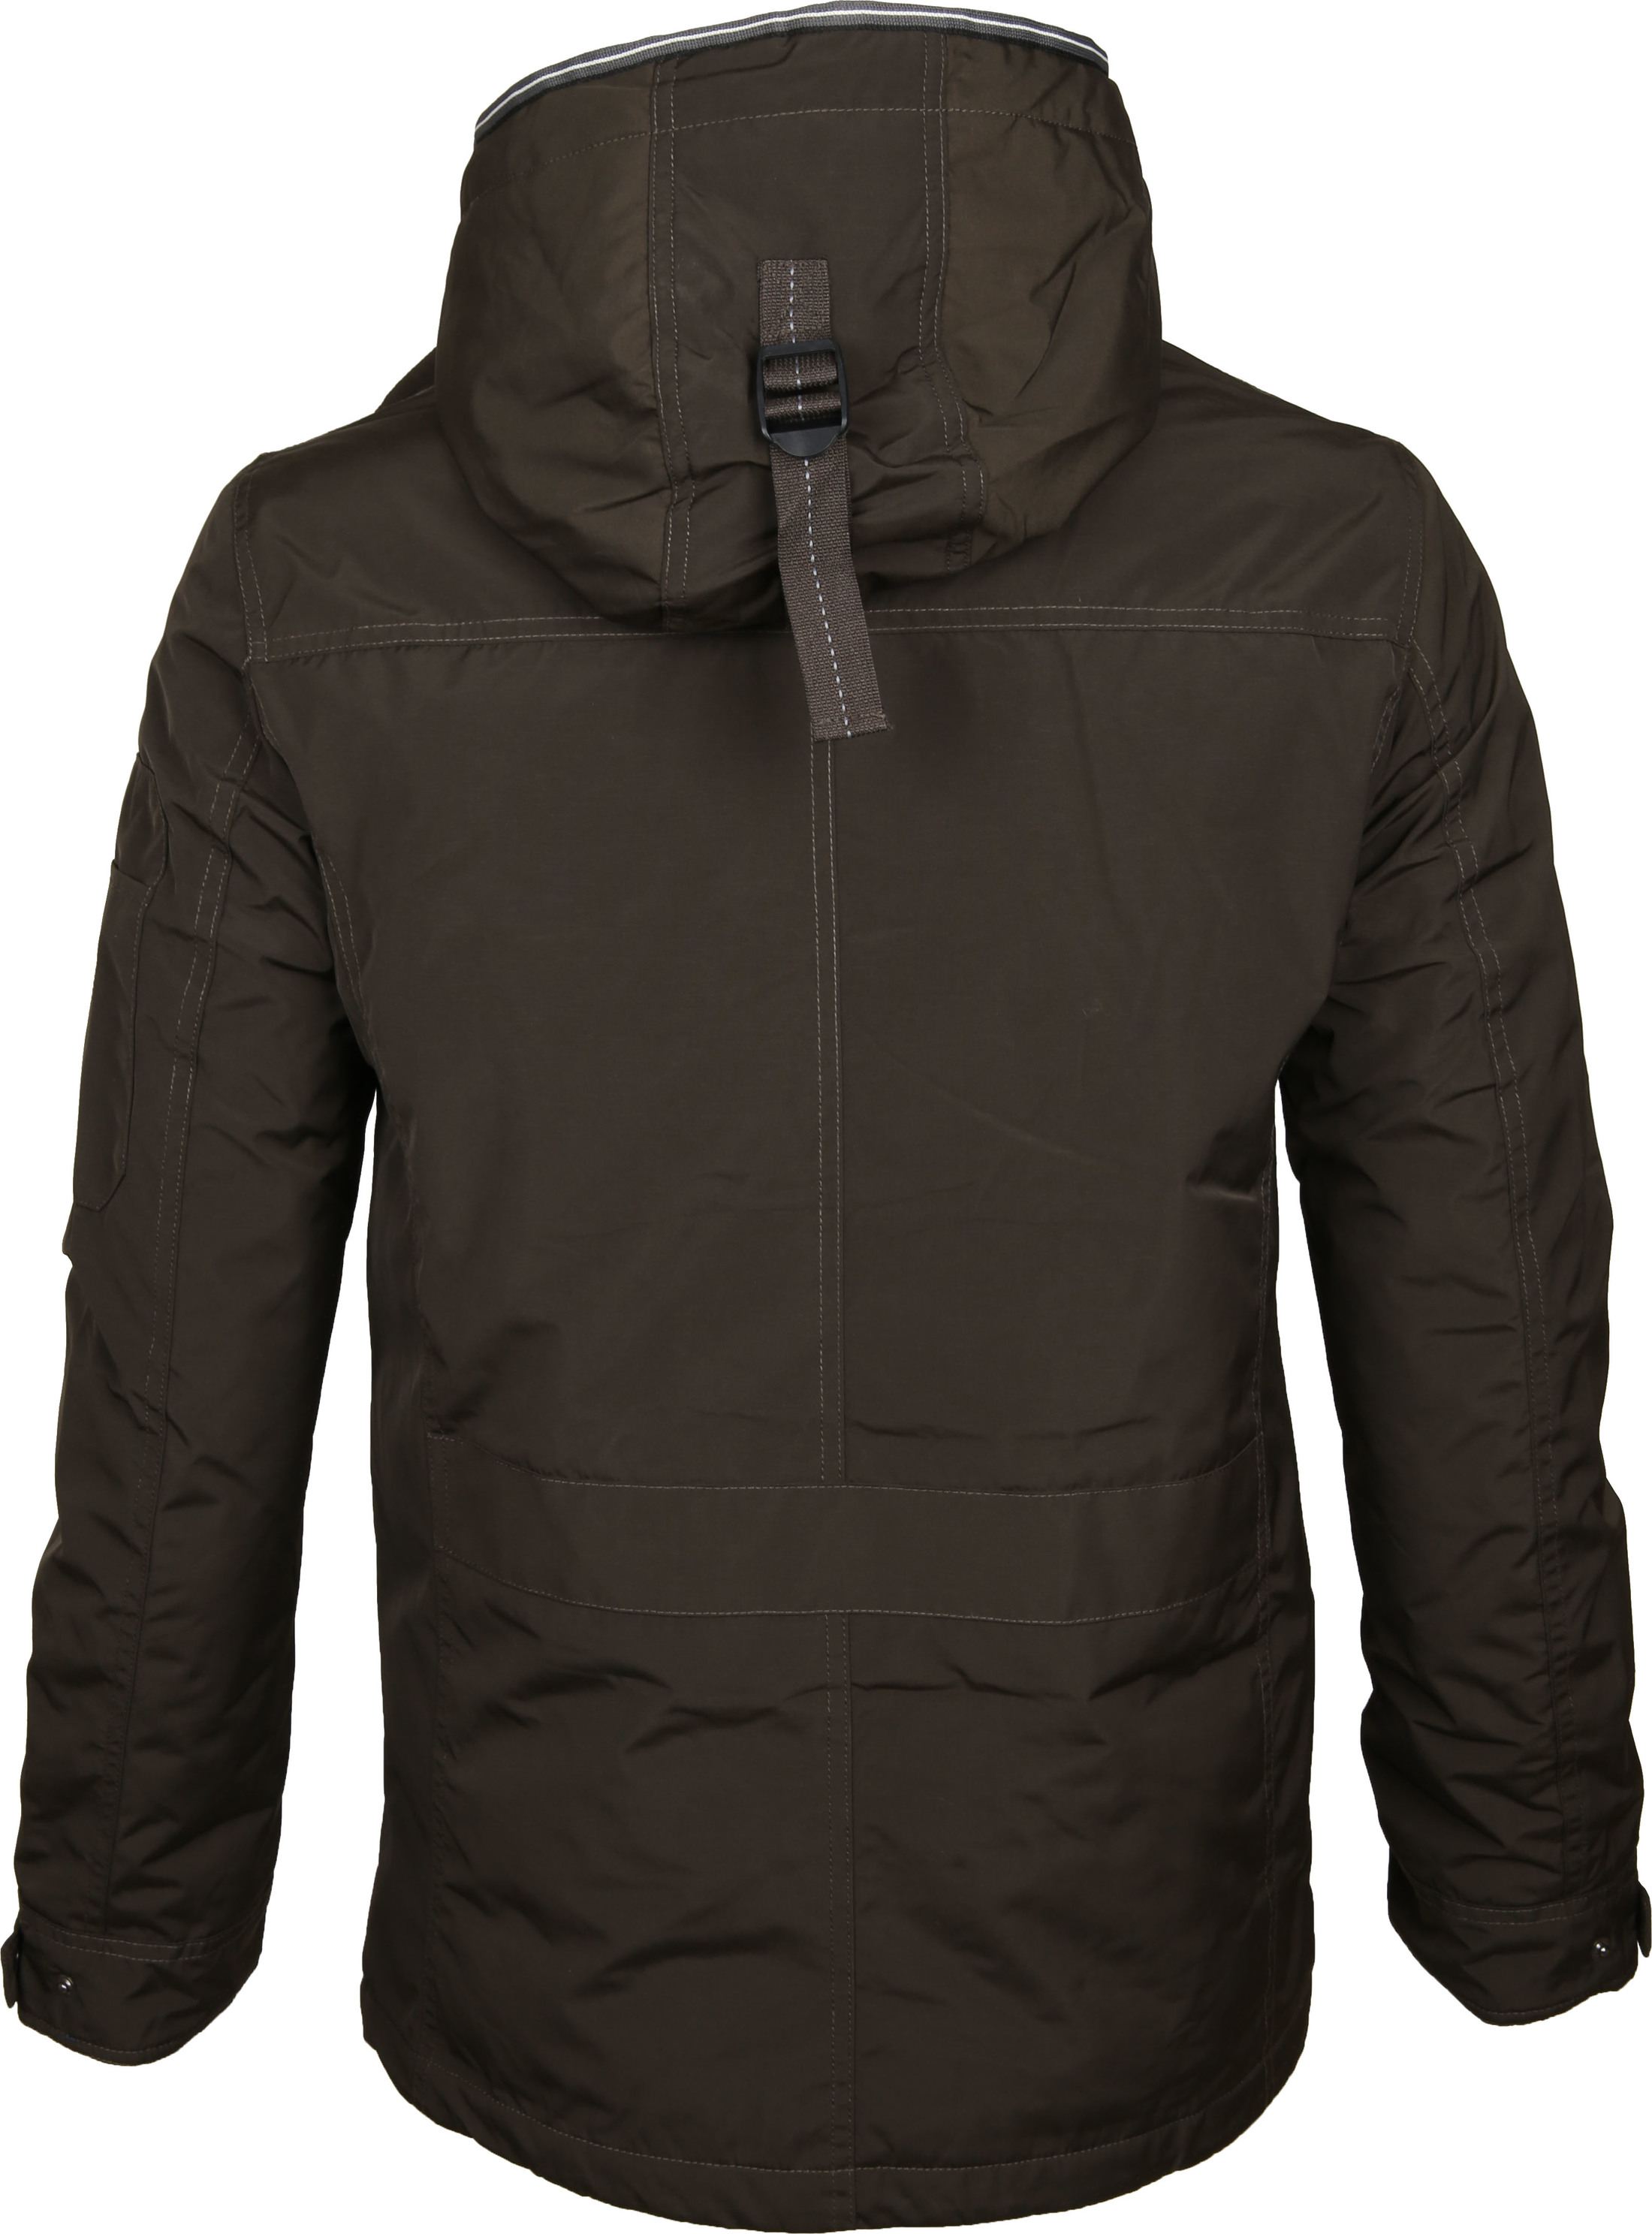 Suitable Jacke Ben Moss Green foto 6